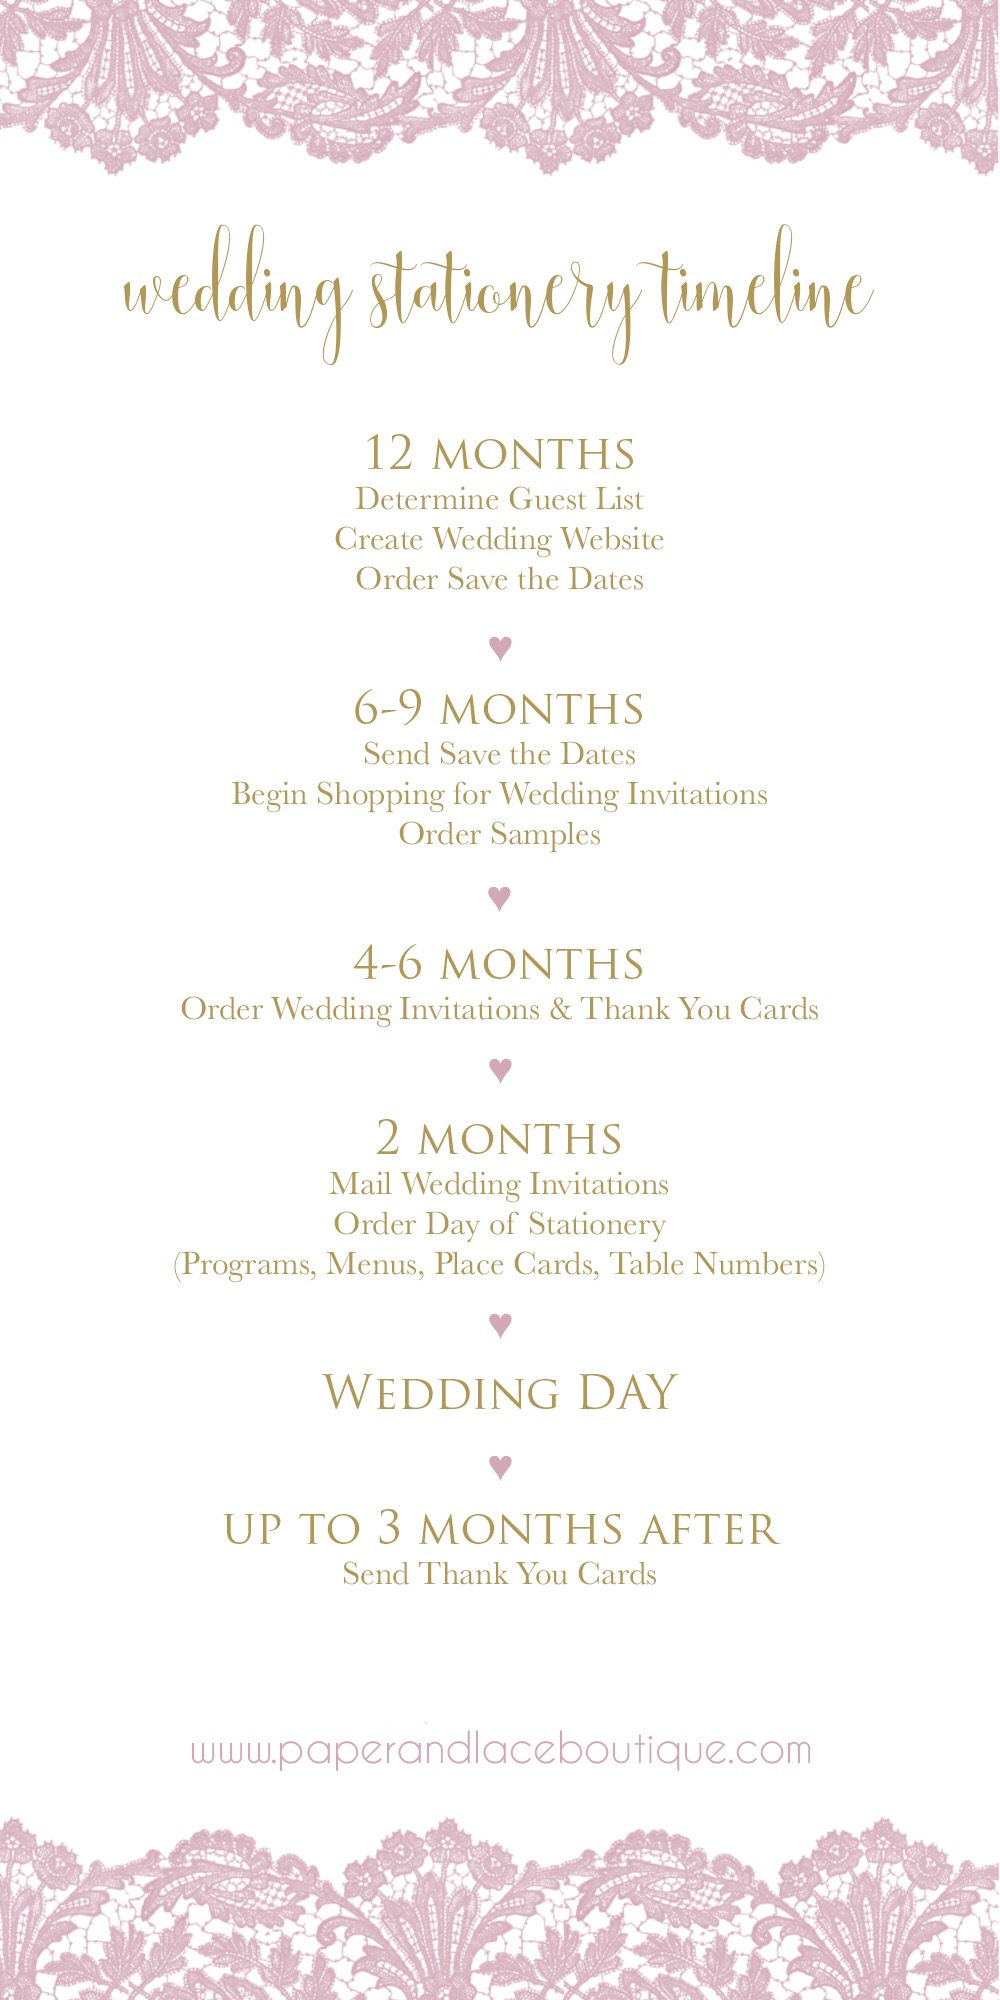 a timeline for wedding stationery paper lace